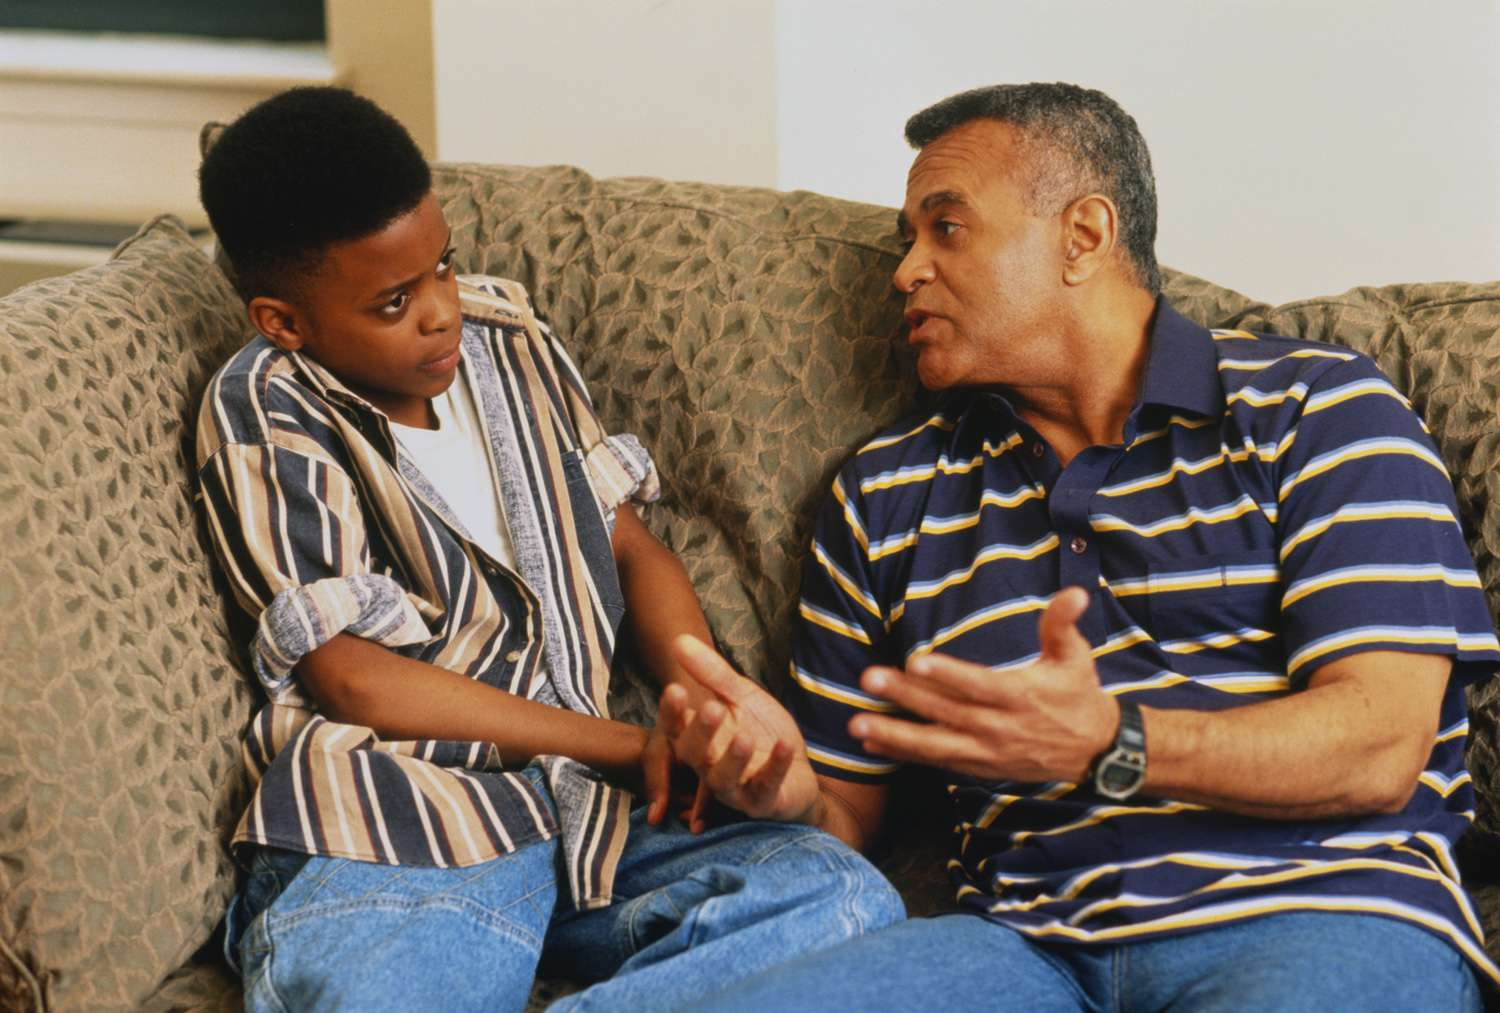 Father talking seriously to teenage son (11-13), sitting on couch